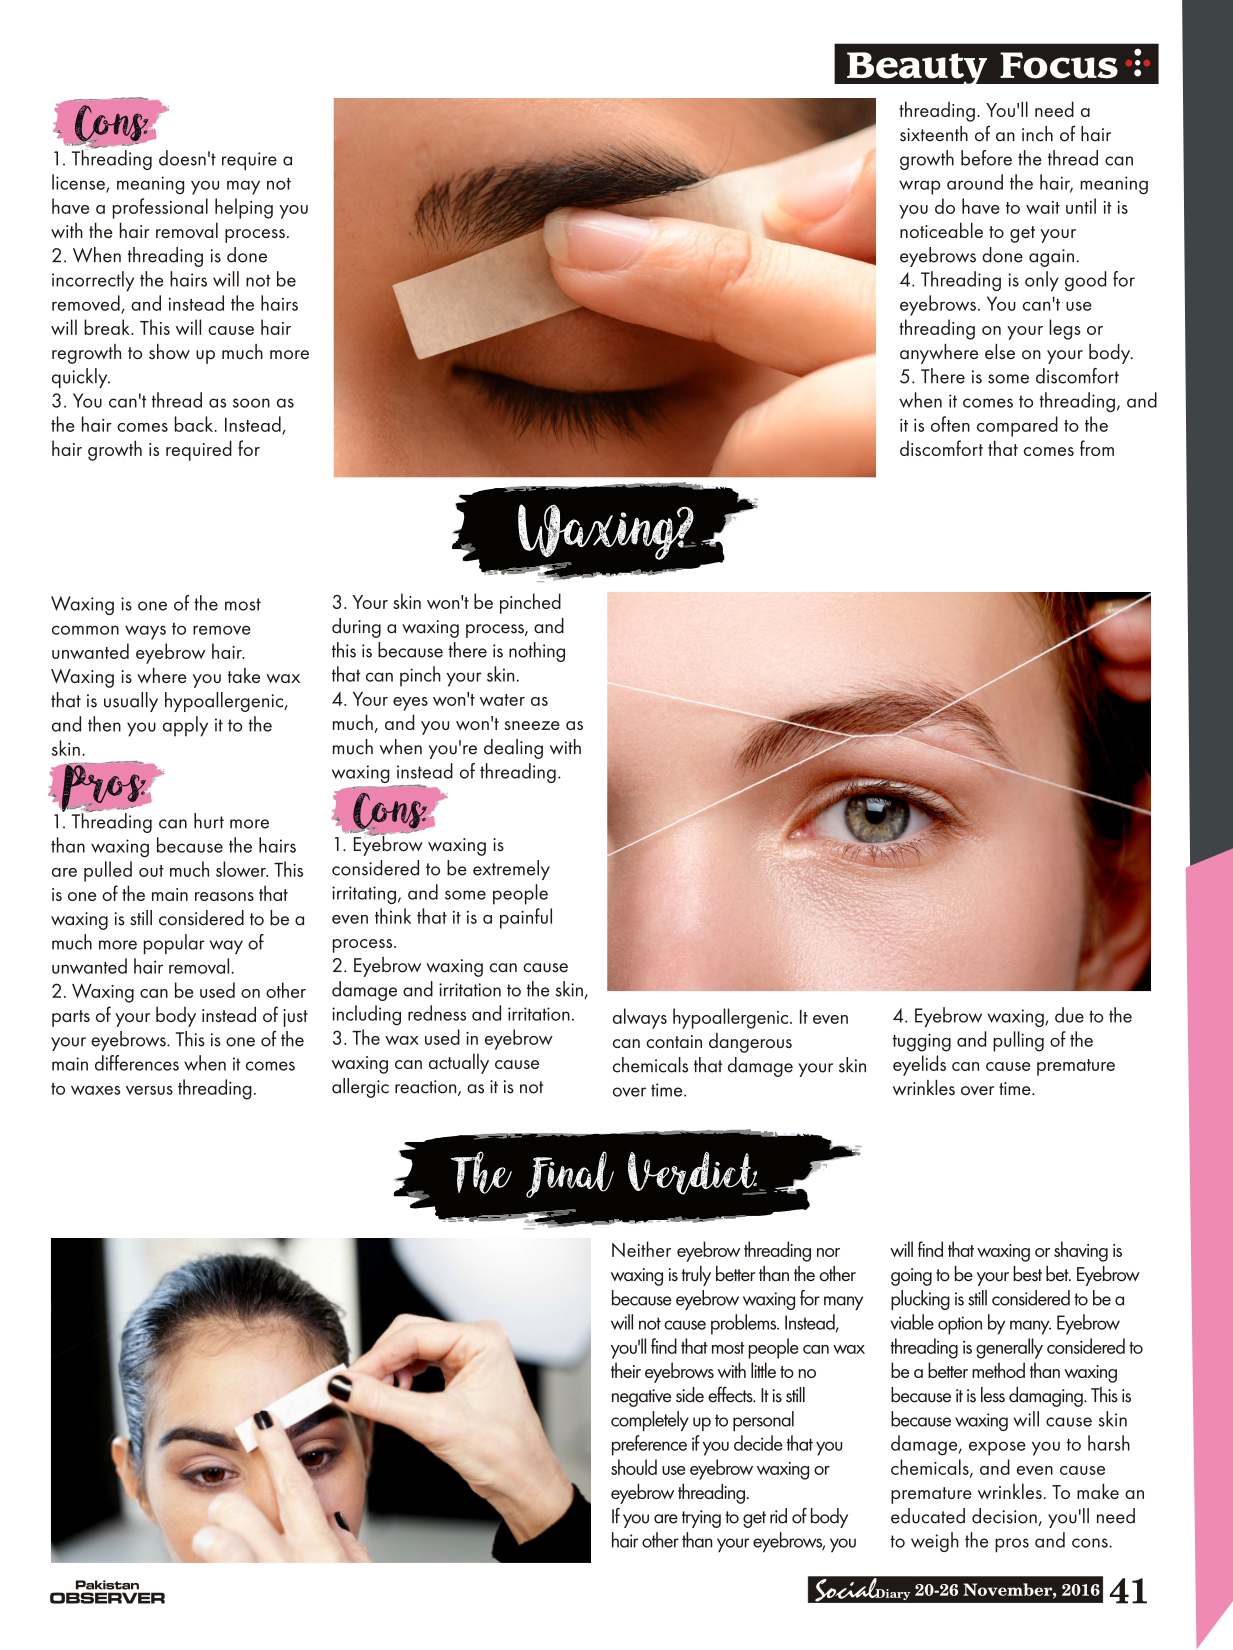 Eyebrow Threading Or Waxing Take The Decision Social Diary